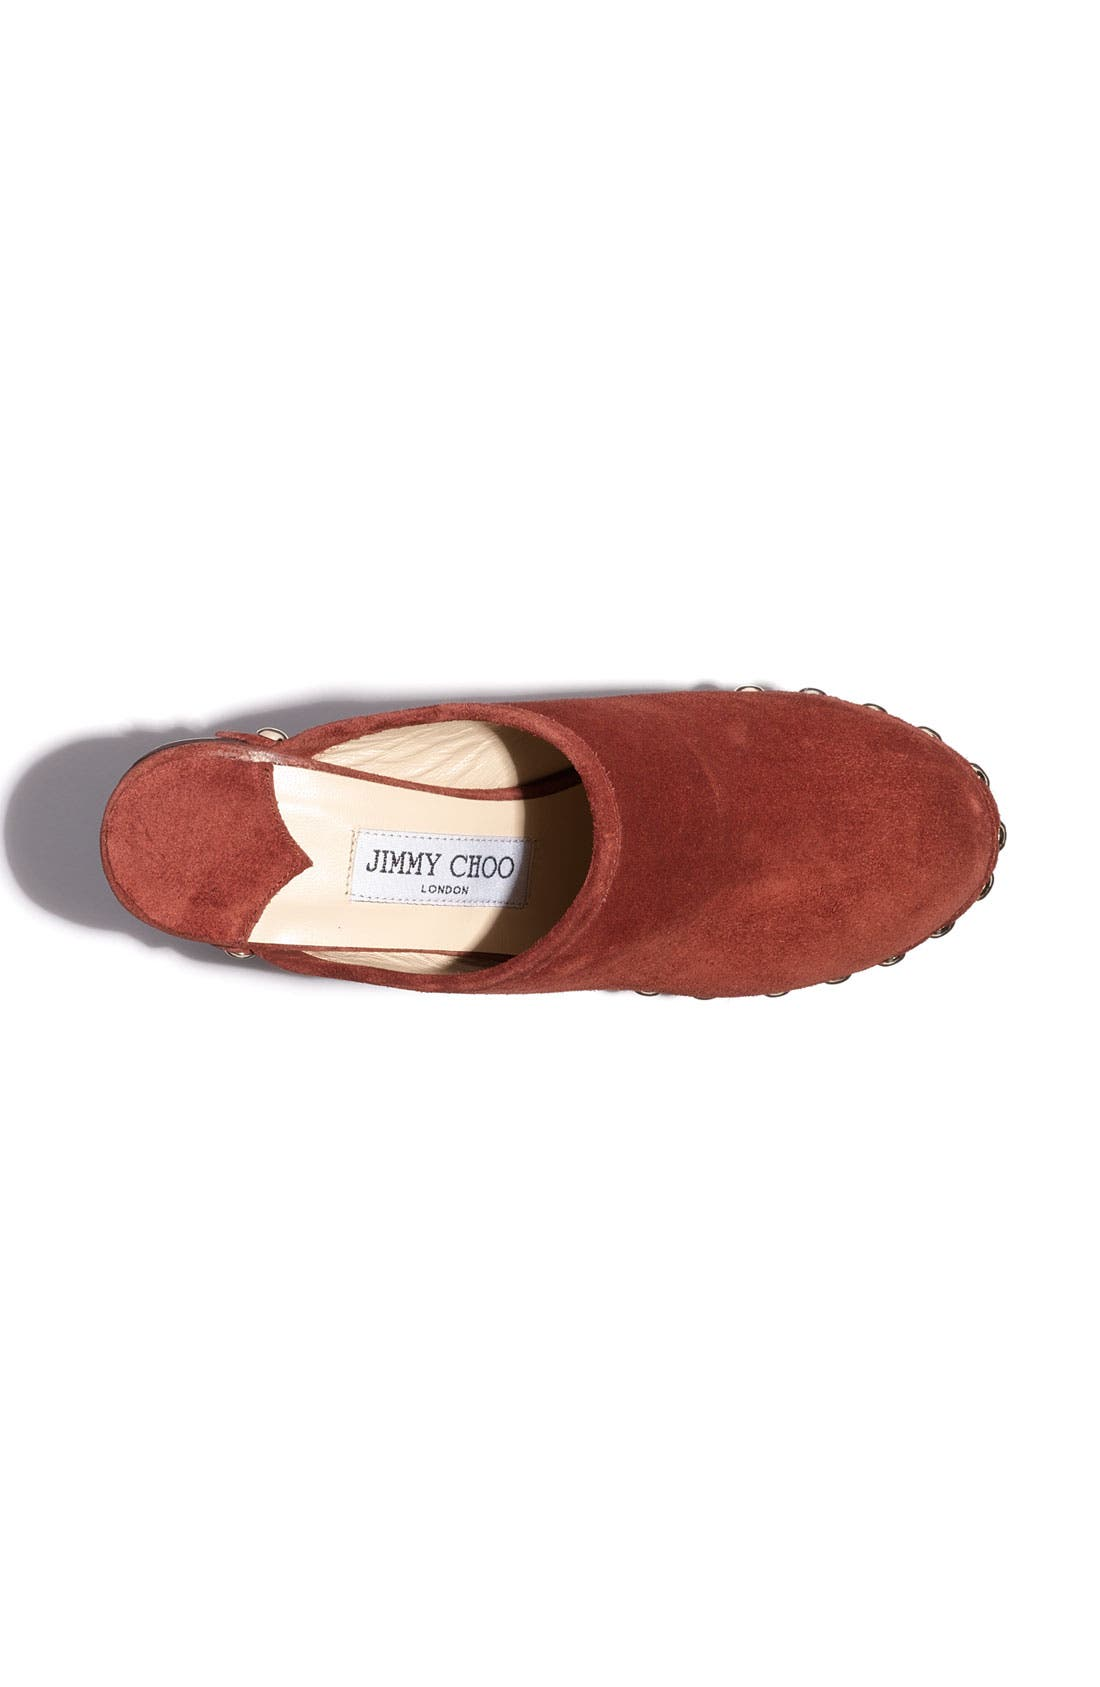 Alternate Image 3  - Jimmy Choo 'Utmost' Clog